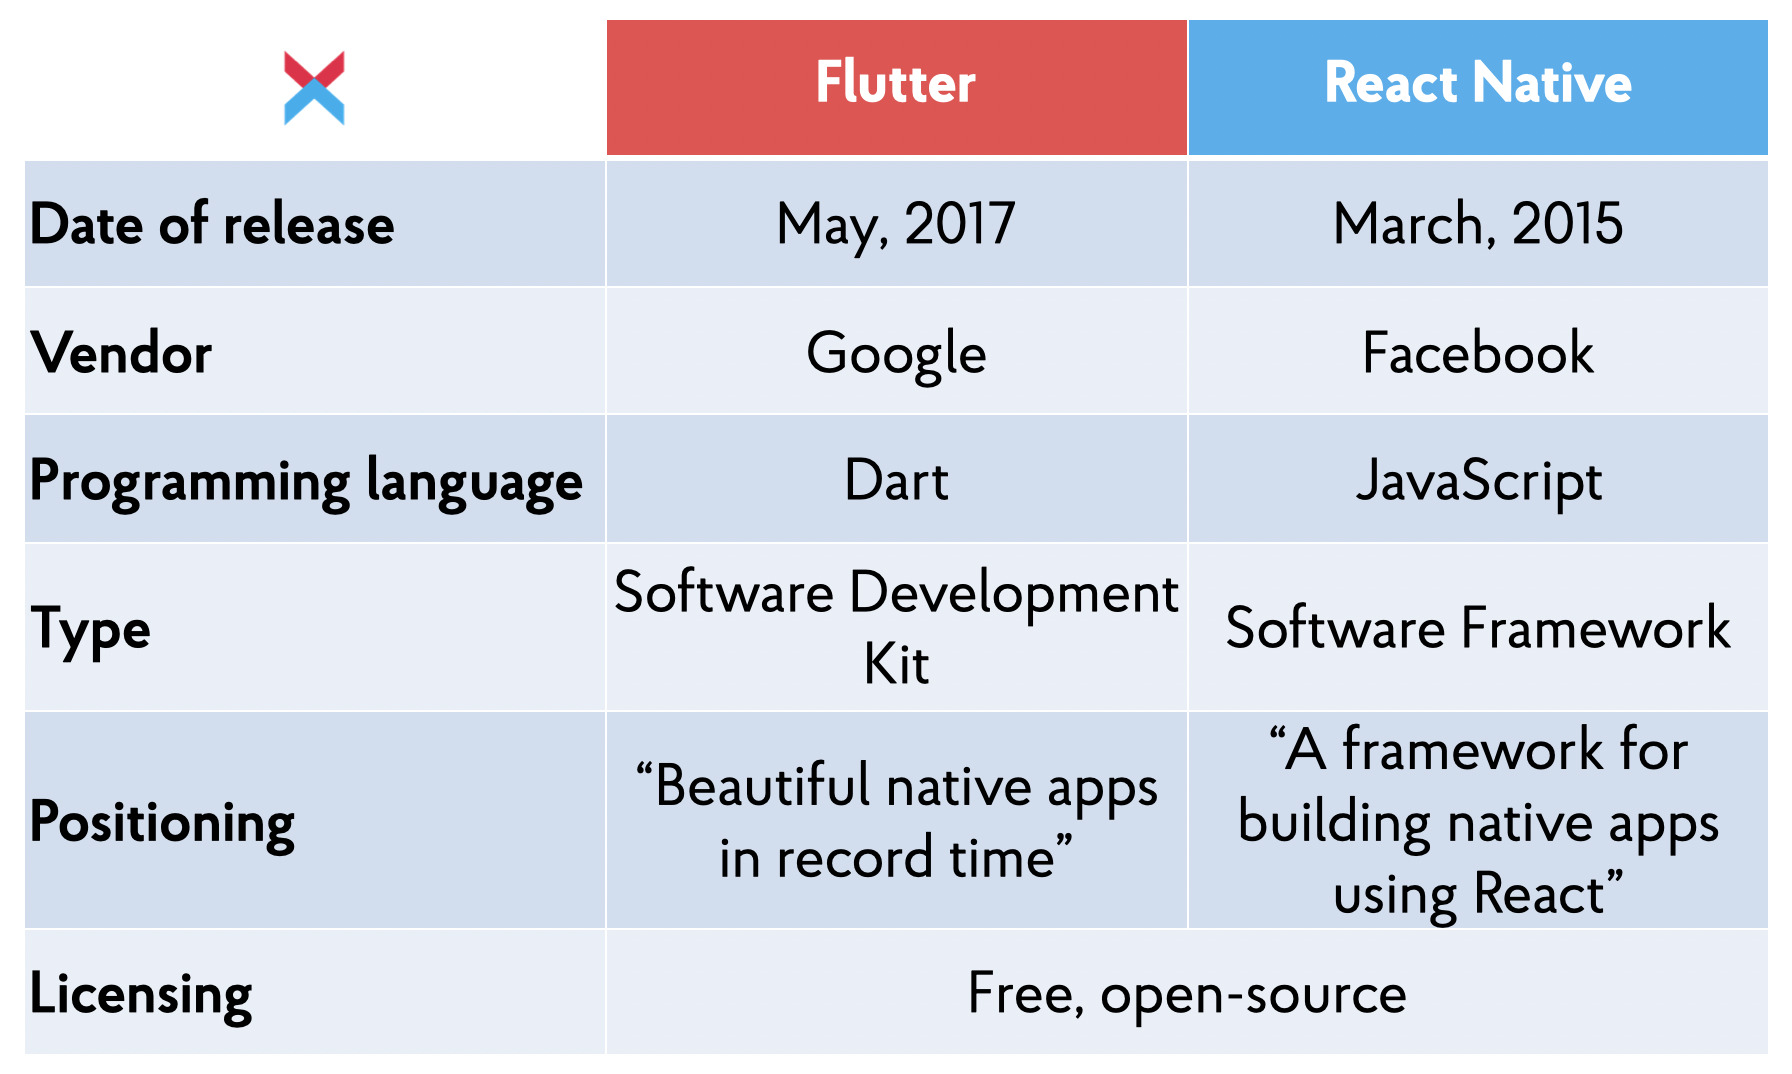 Basic info about Flutter and React Native